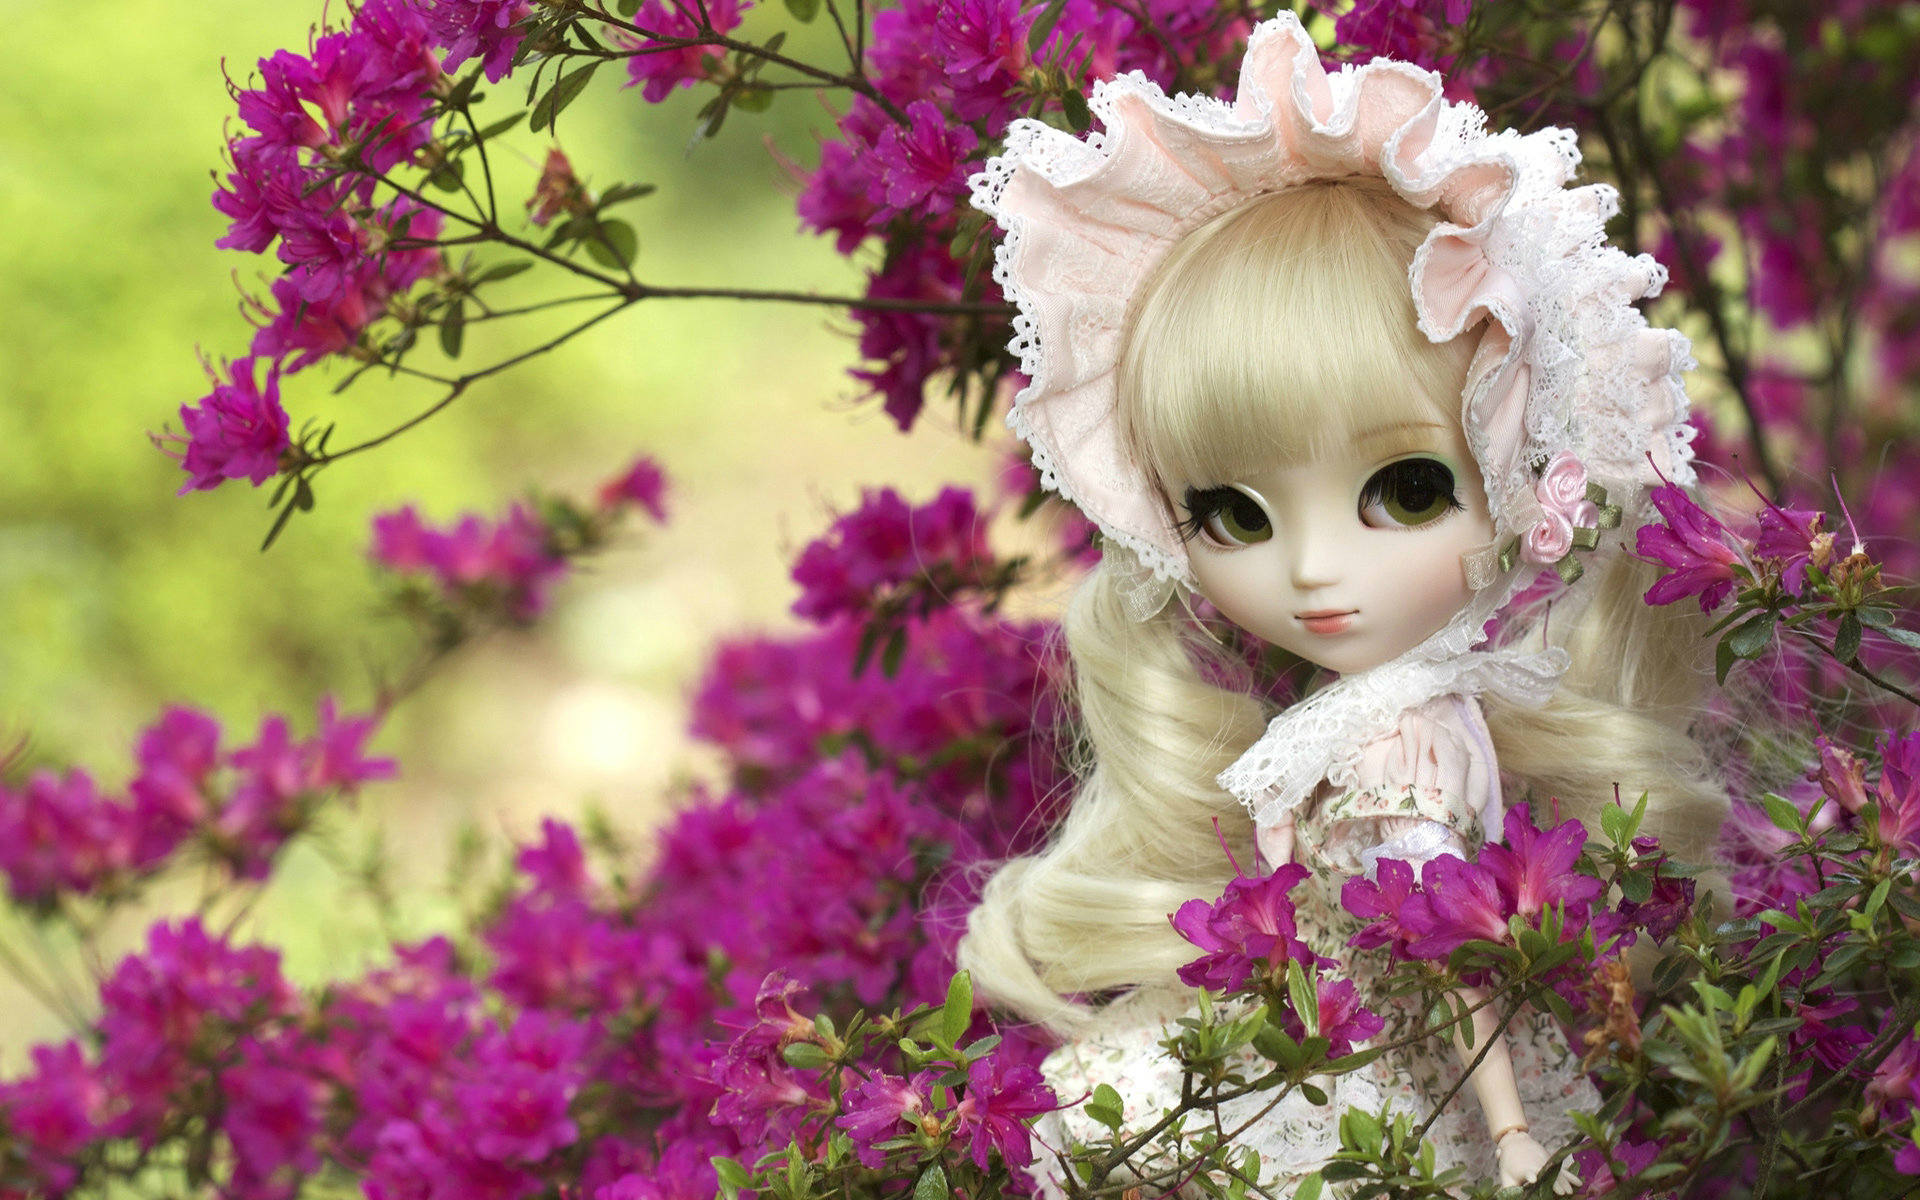 Very Cute Doll Wallpapers 1920x1200